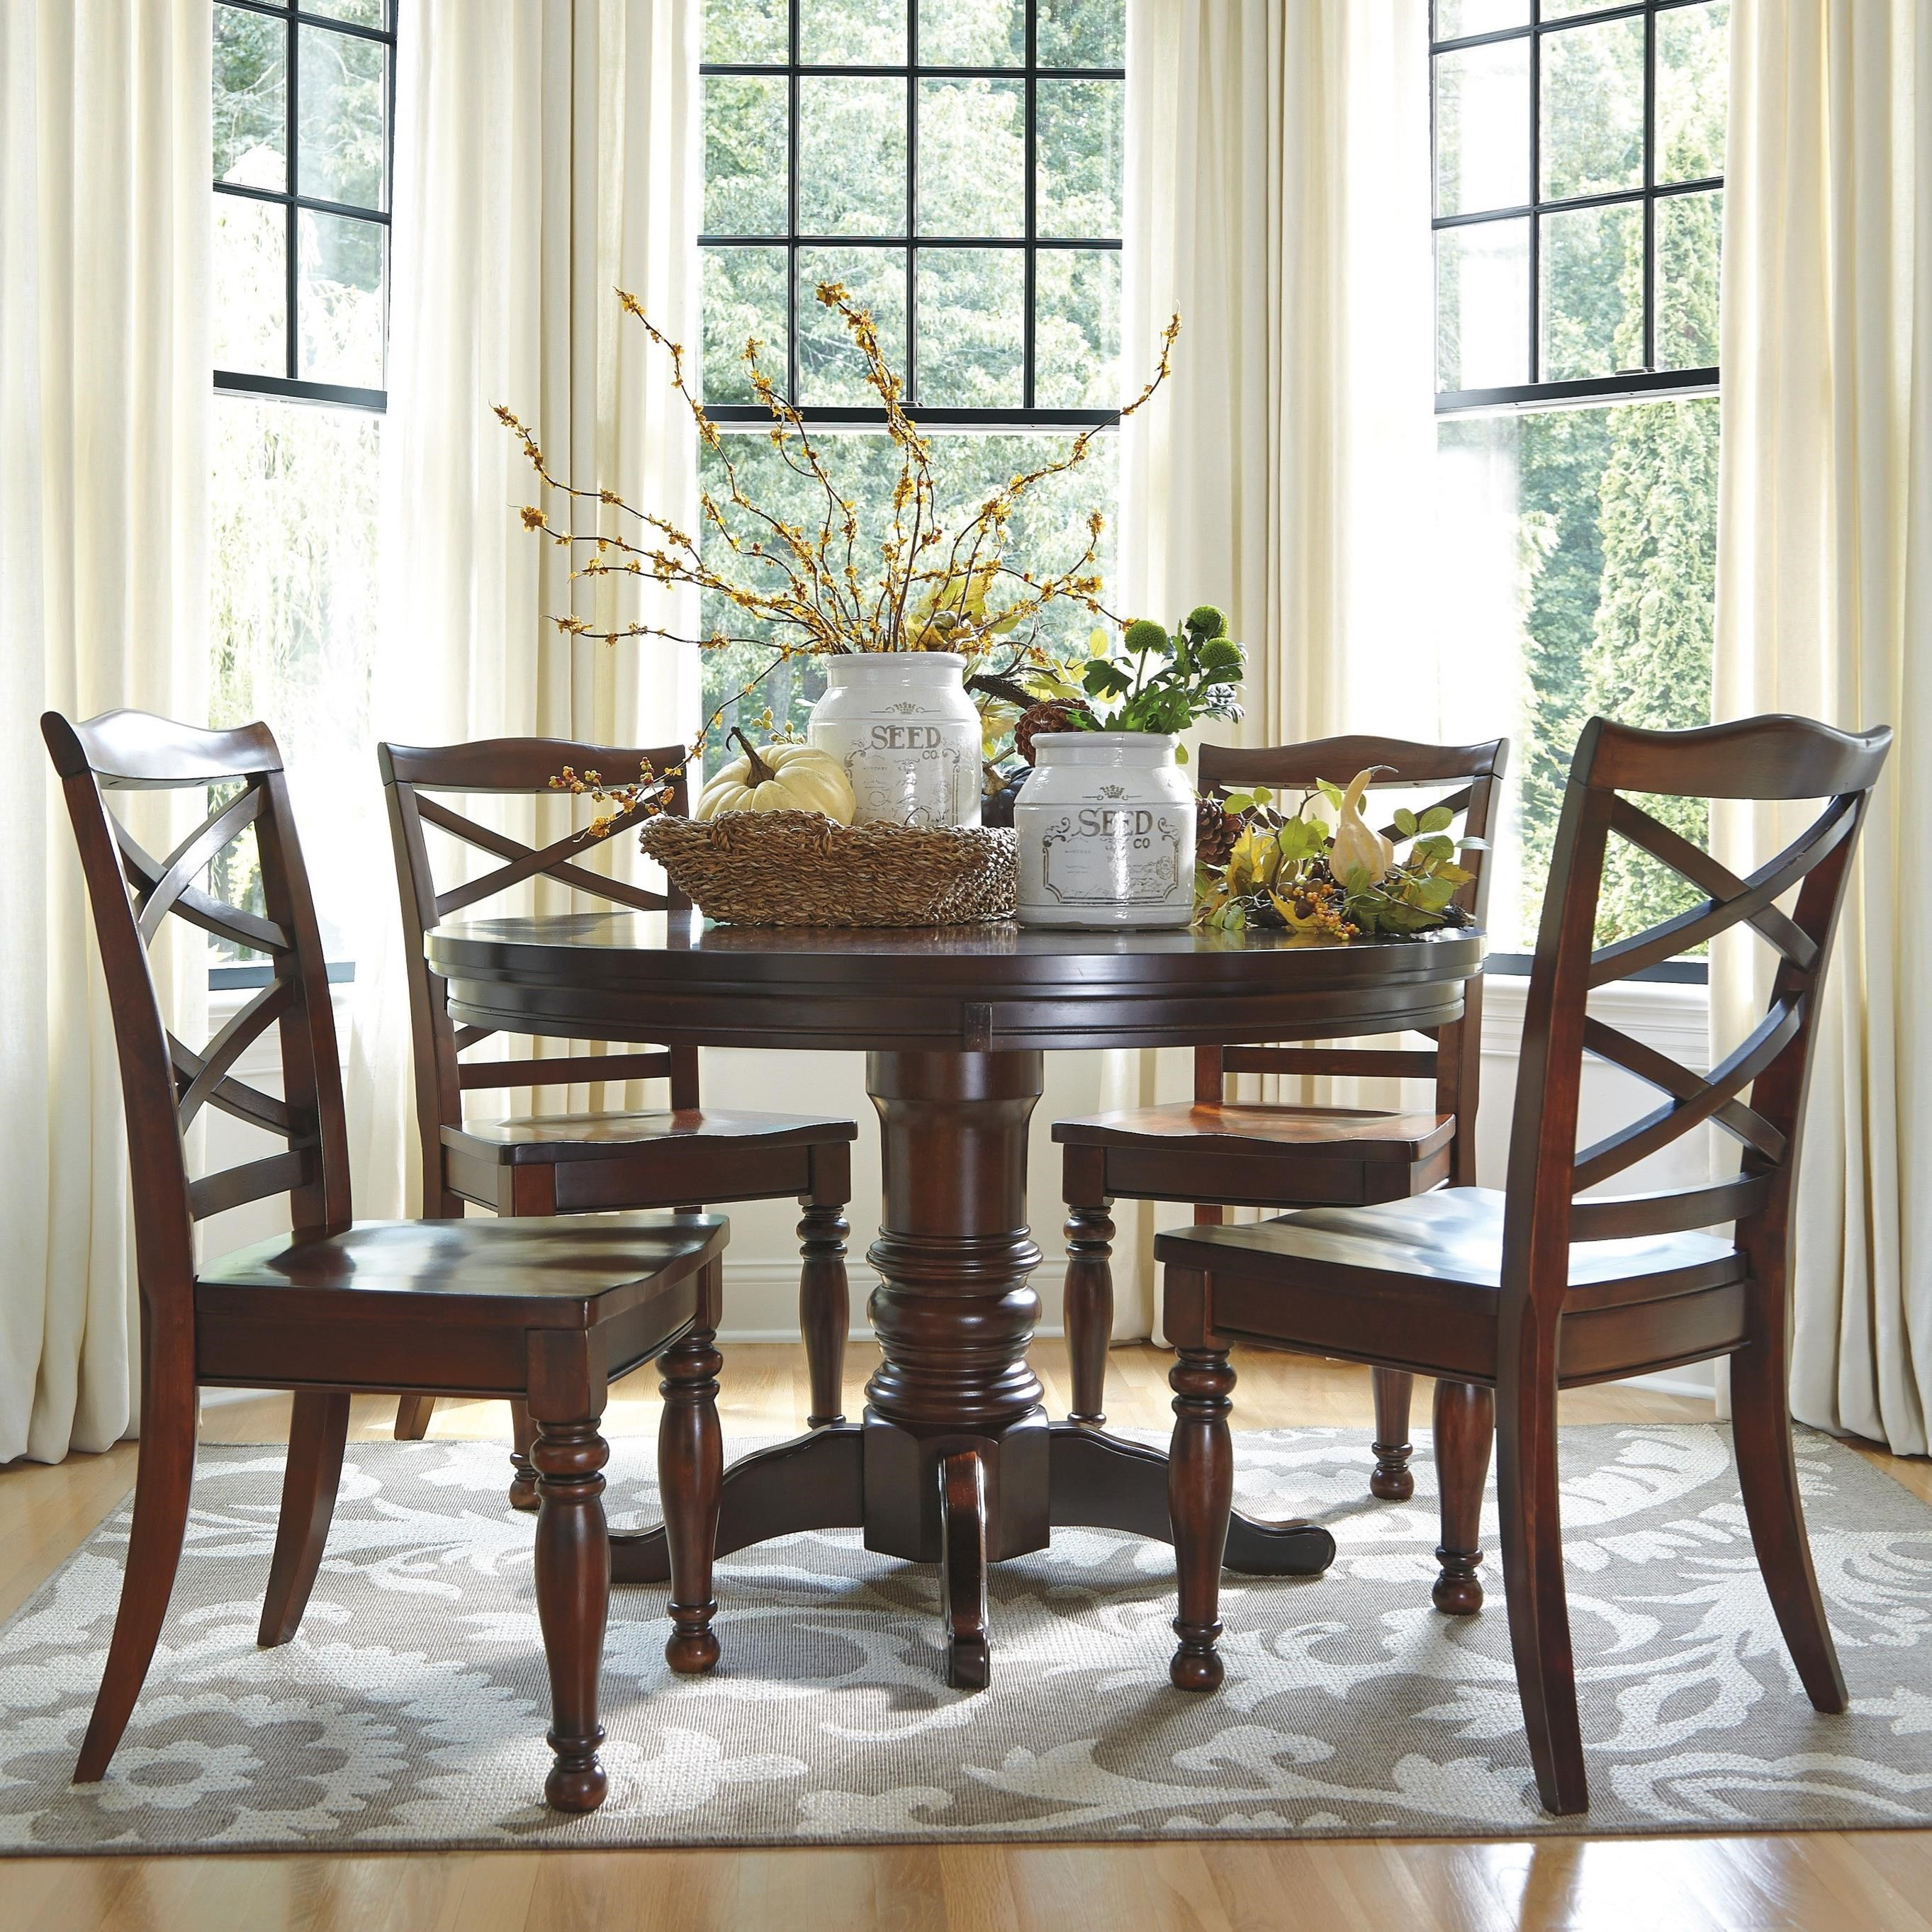 Ashley Furniture Porter 5 Piece Round Dining Table Set